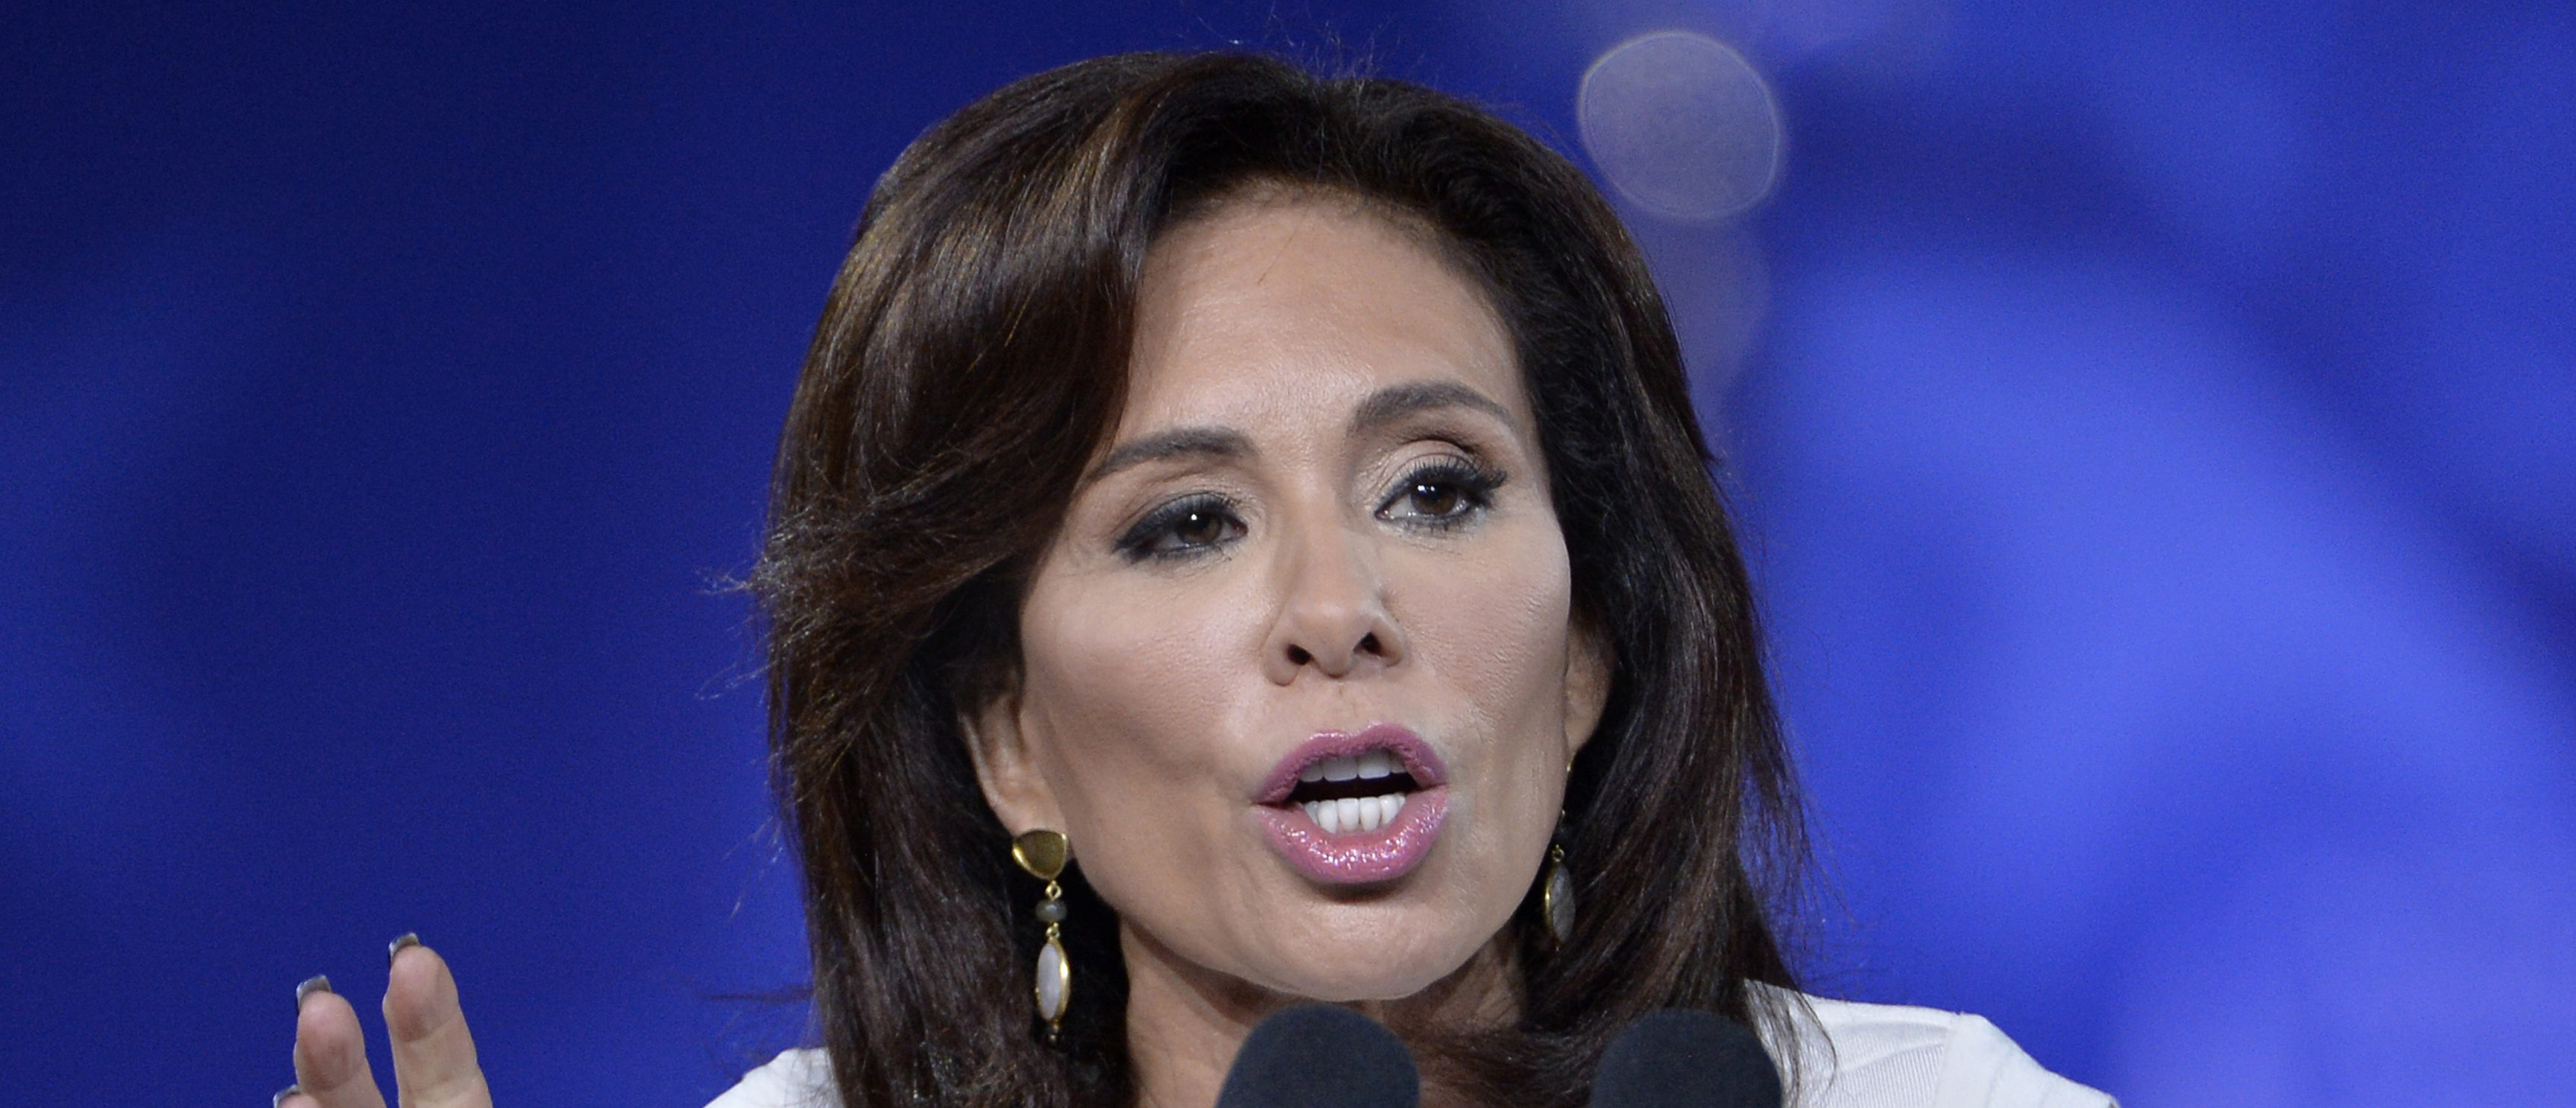 Judge Jeanine Acknowledges Suspension, Says She Is Worried She Could Be Fired